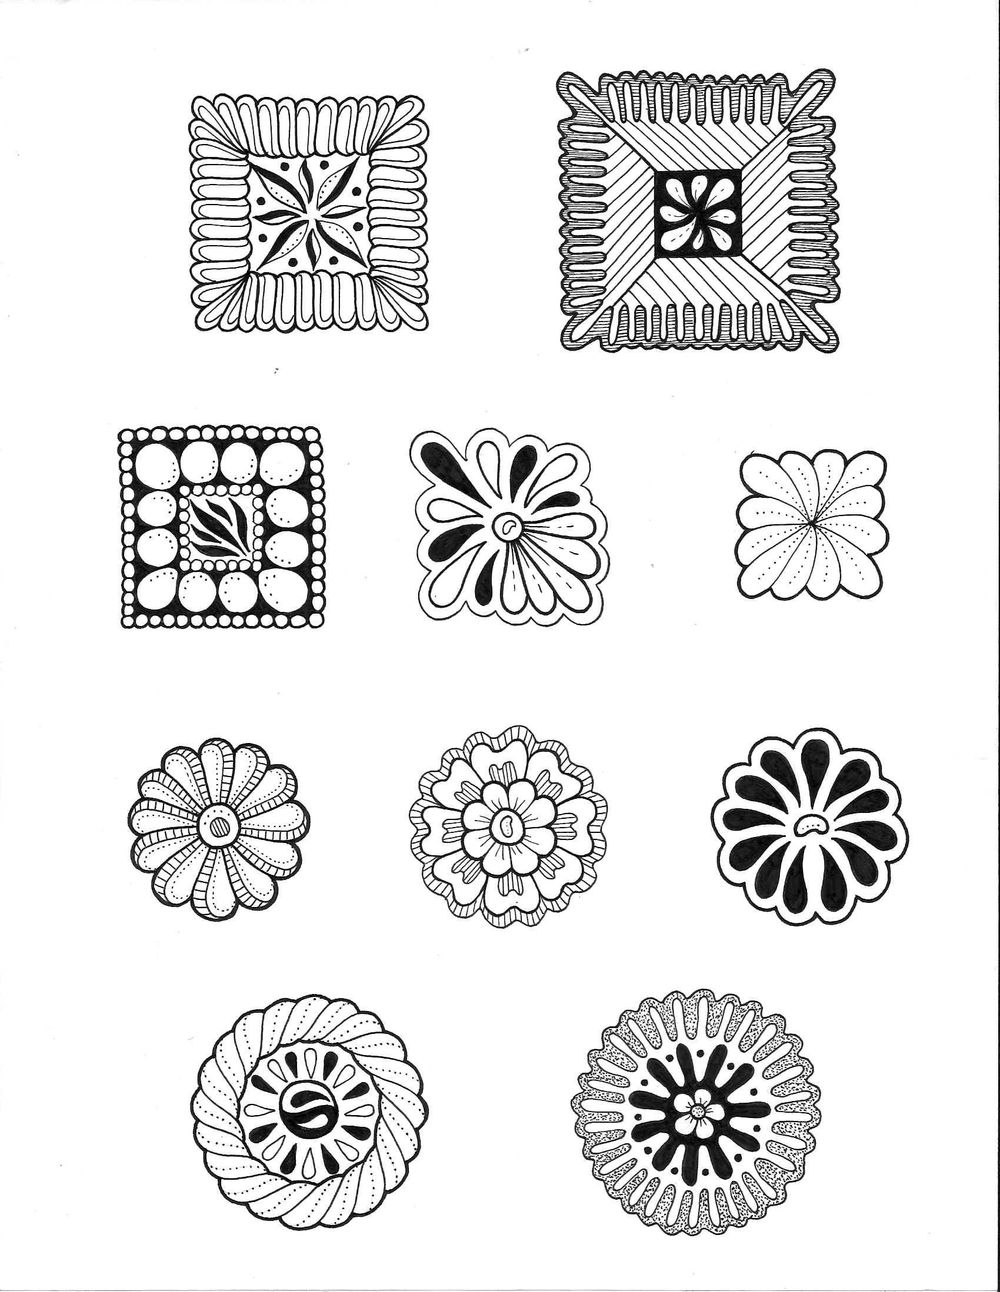 Inked Shapes and Fill a page - image 1 - student project